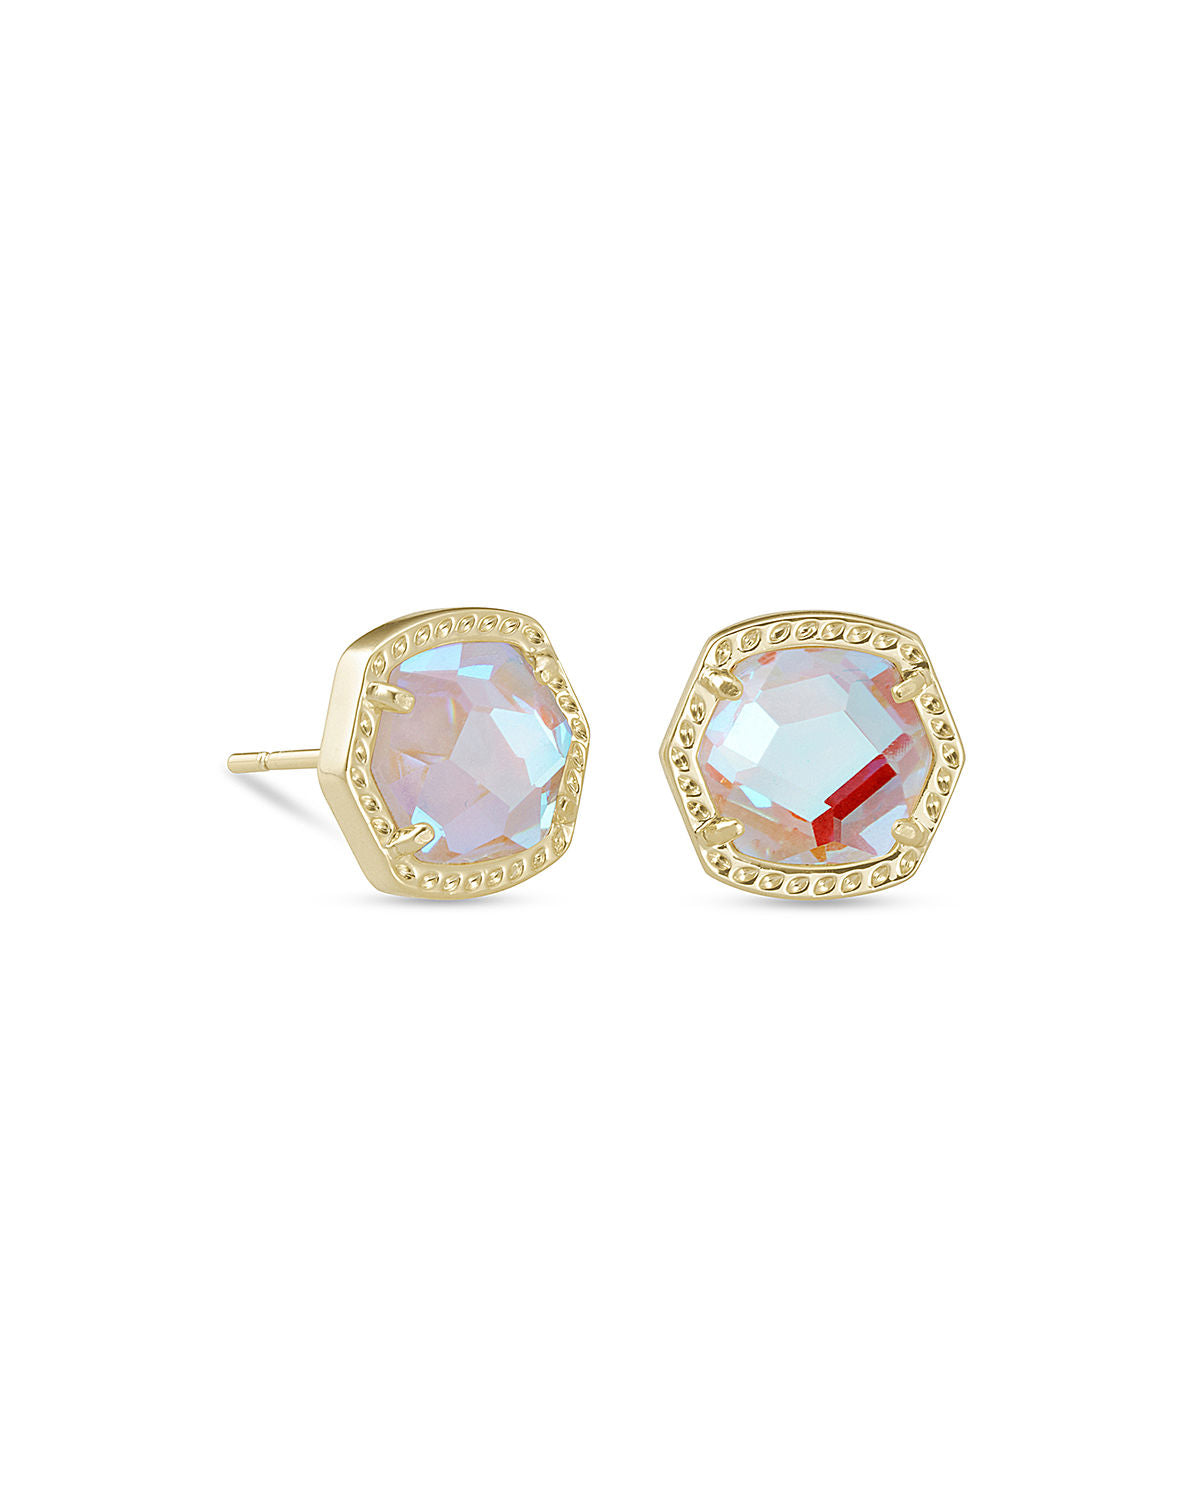 Kendra Scott Davie Stud Earring Gold Dichroic Glass - Gabrielle's Biloxi